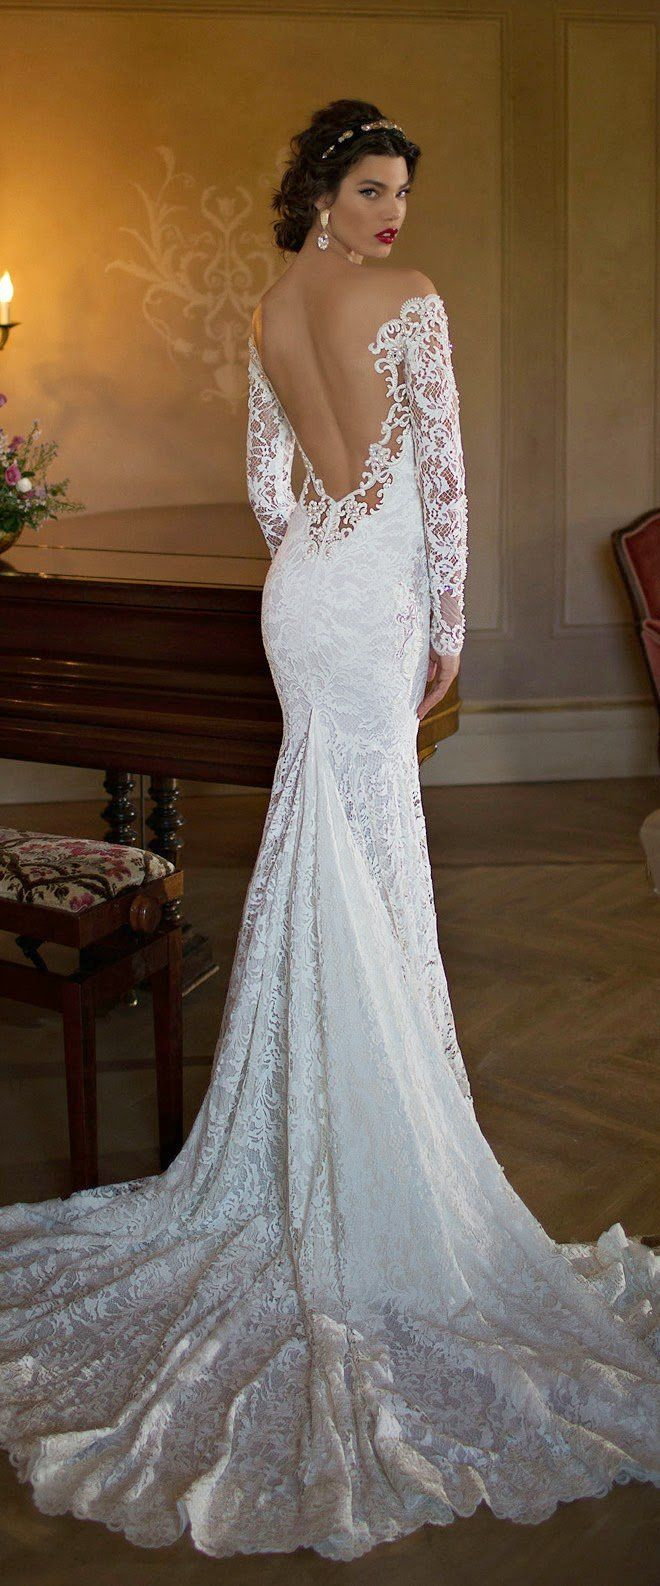 best clothes images on pinterest sweet dress classy dress and